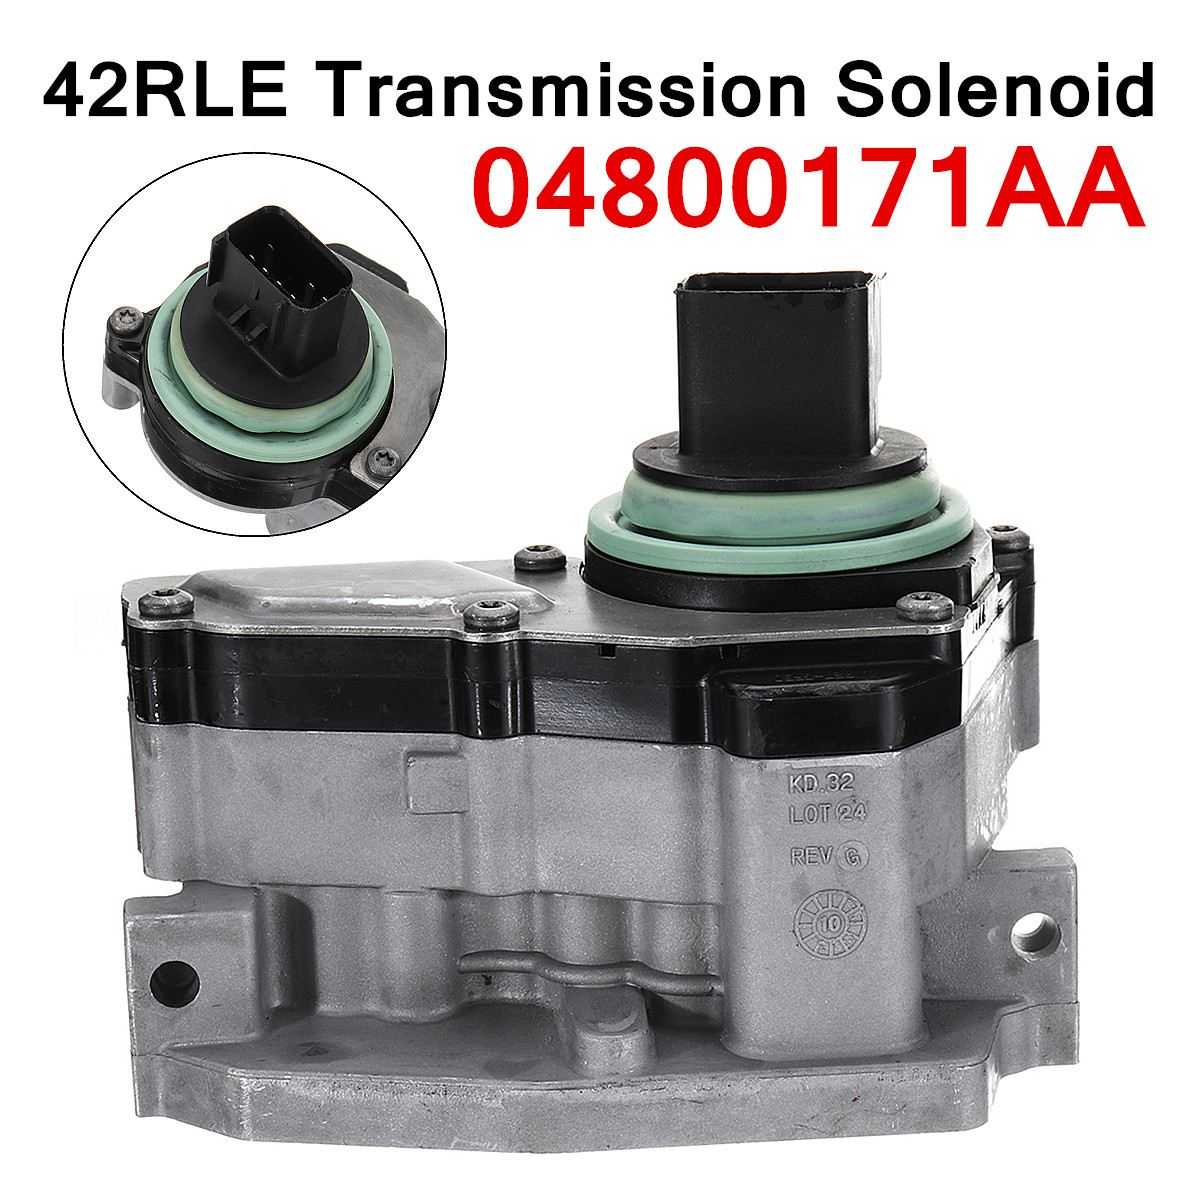 04800171AA 42RLE Transmission Shift Solenoid Block Pack Fits for Dodge-Chrysler Excellent Mechanical Stability 15x10x13cm04800171AA 42RLE Transmission Shift Solenoid Block Pack Fits for Dodge-Chrysler Excellent Mechanical Stability 15x10x13cm